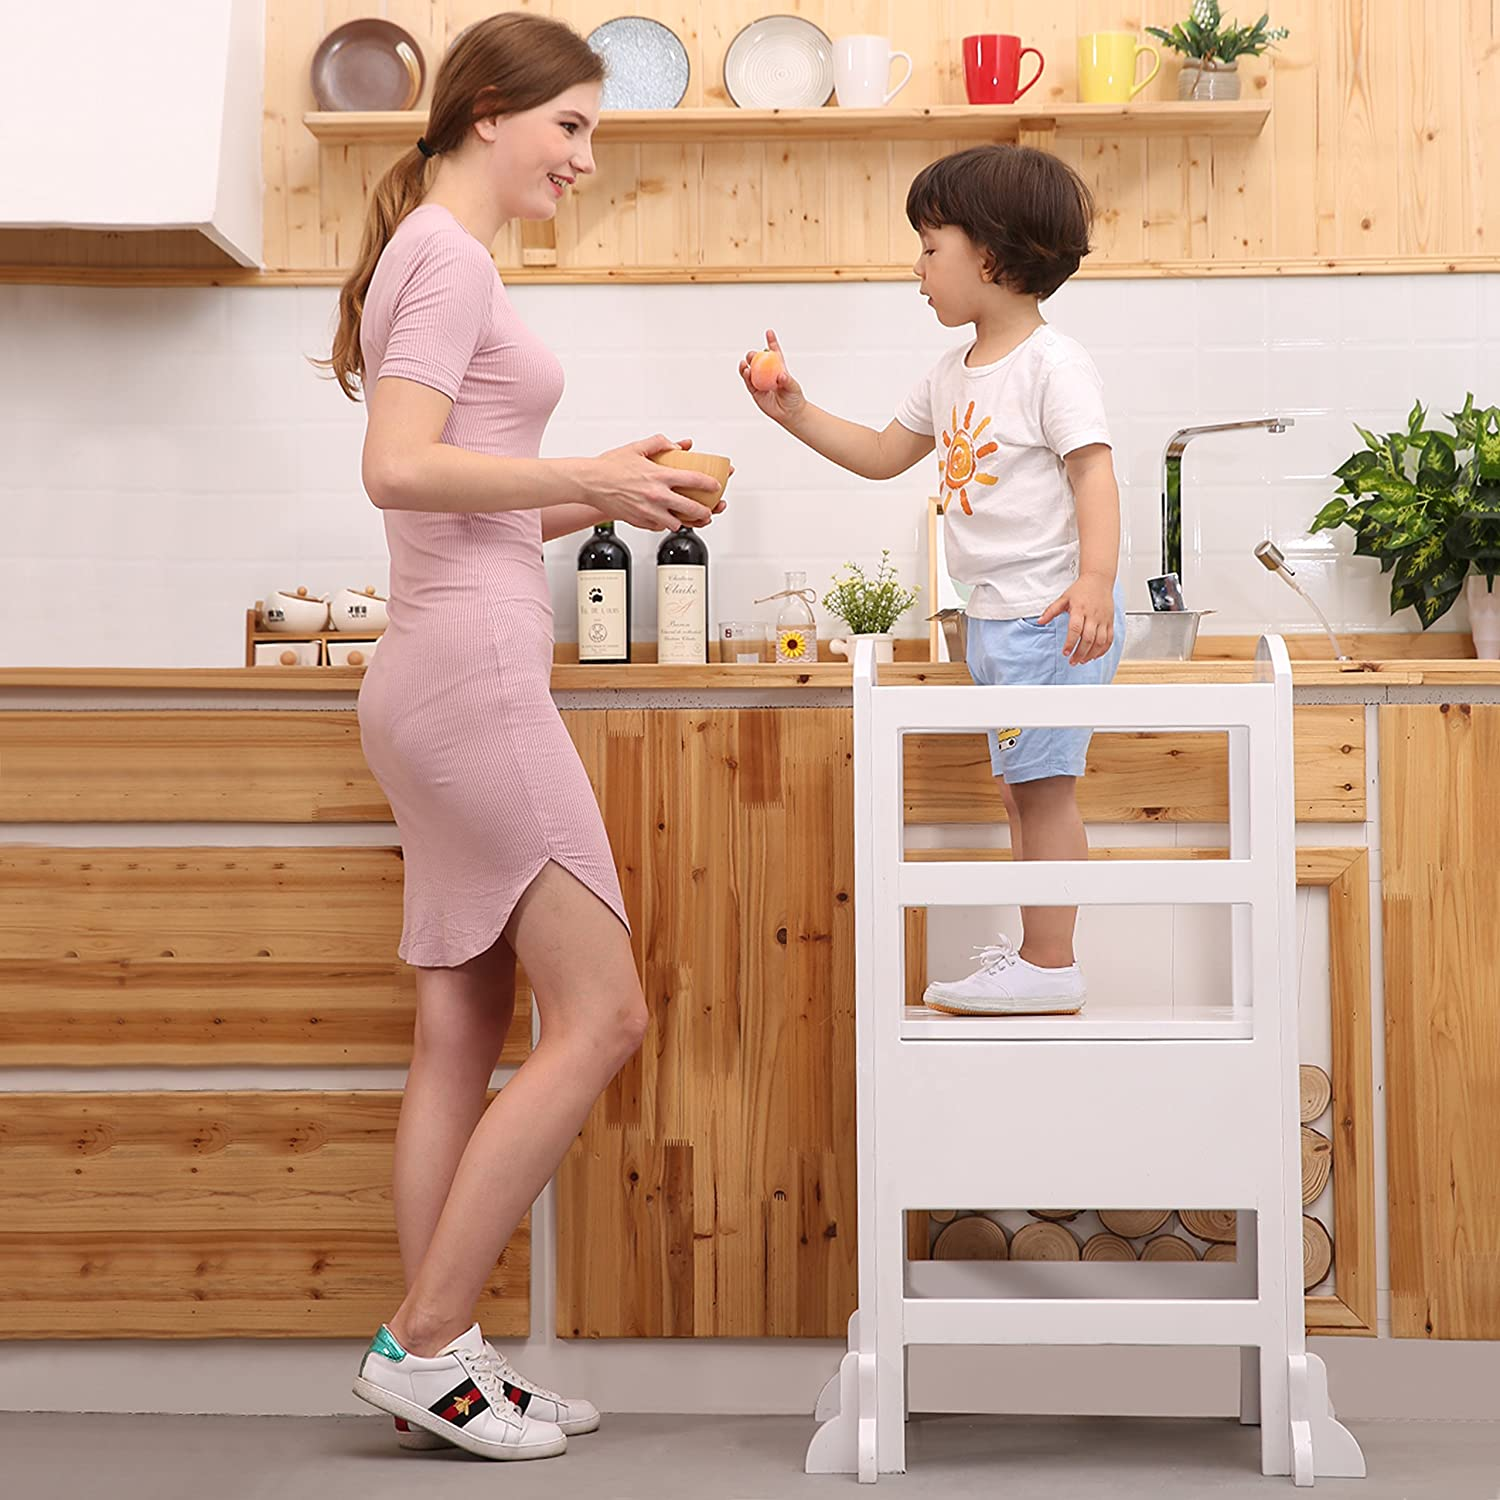 UNICOO- Height Adjustable Kids Learning Stool Toddler Stool with Safety Rail-Solid Hardwood Construction Kids Kitchen Step Stool Burlywood-02 Perfect for Toddlers